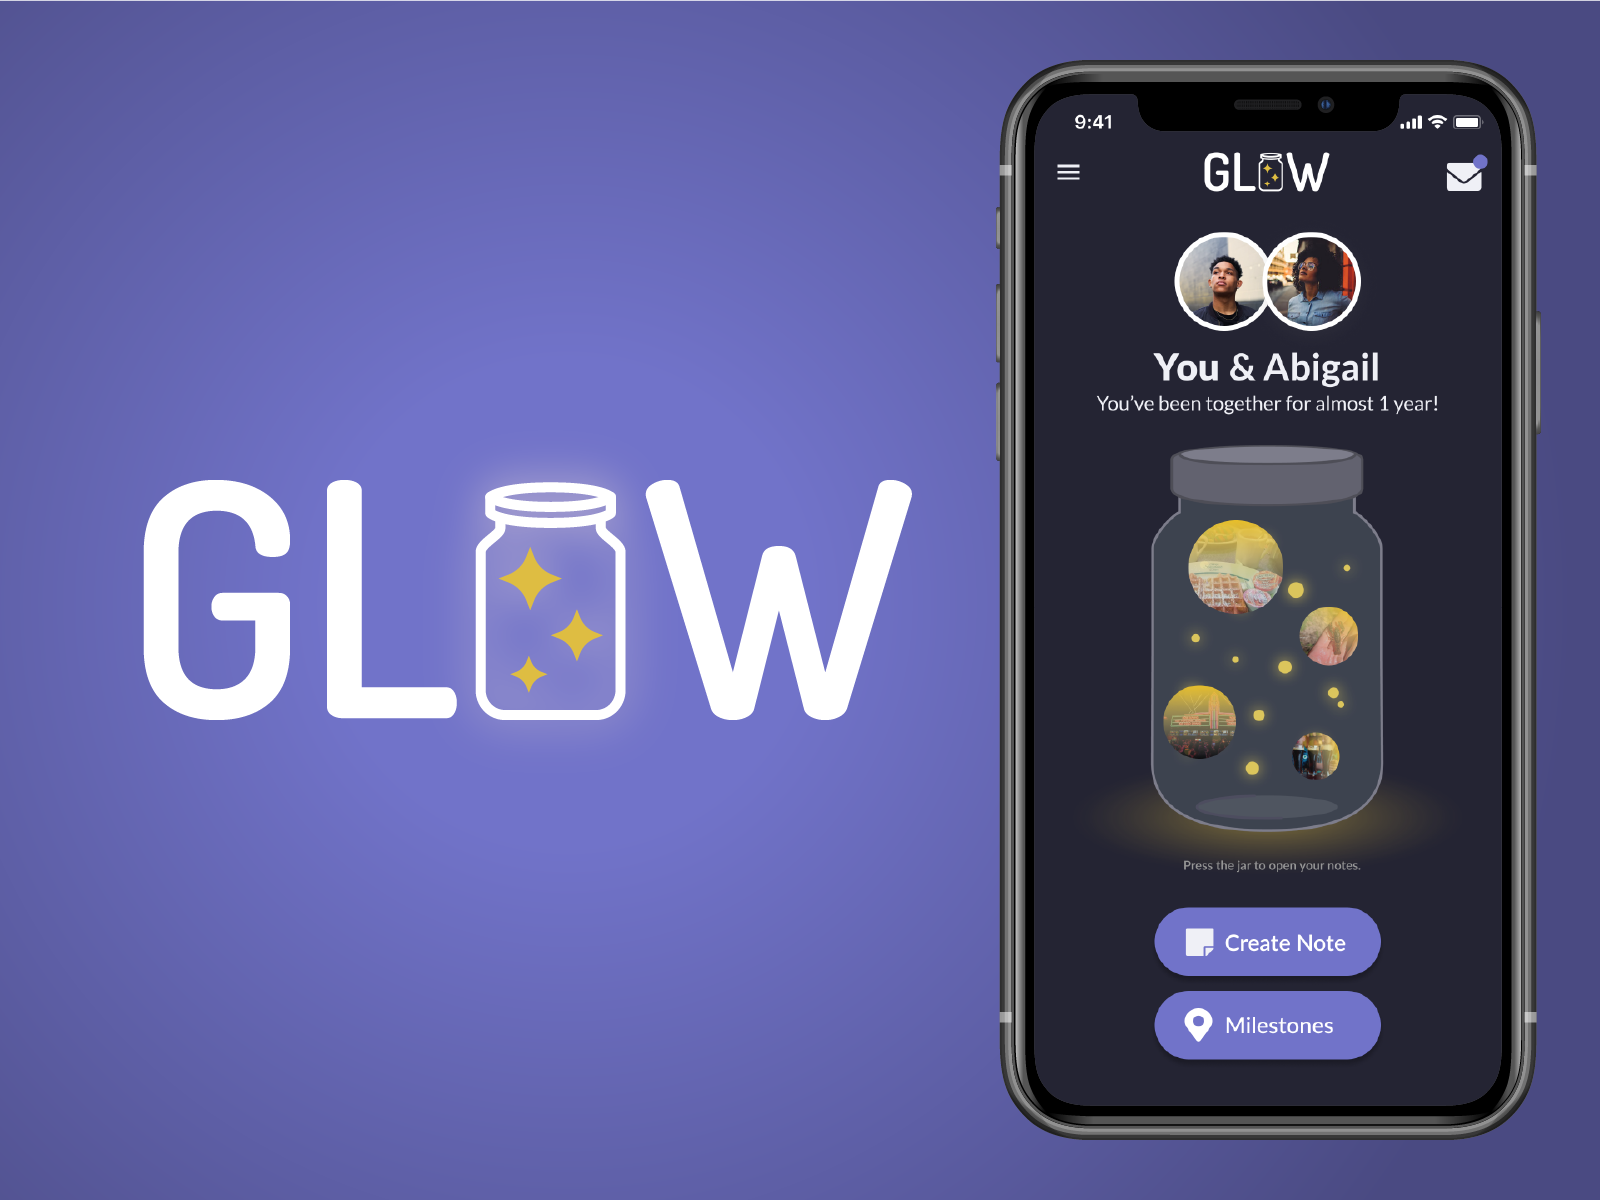 Preview of Glow project interface